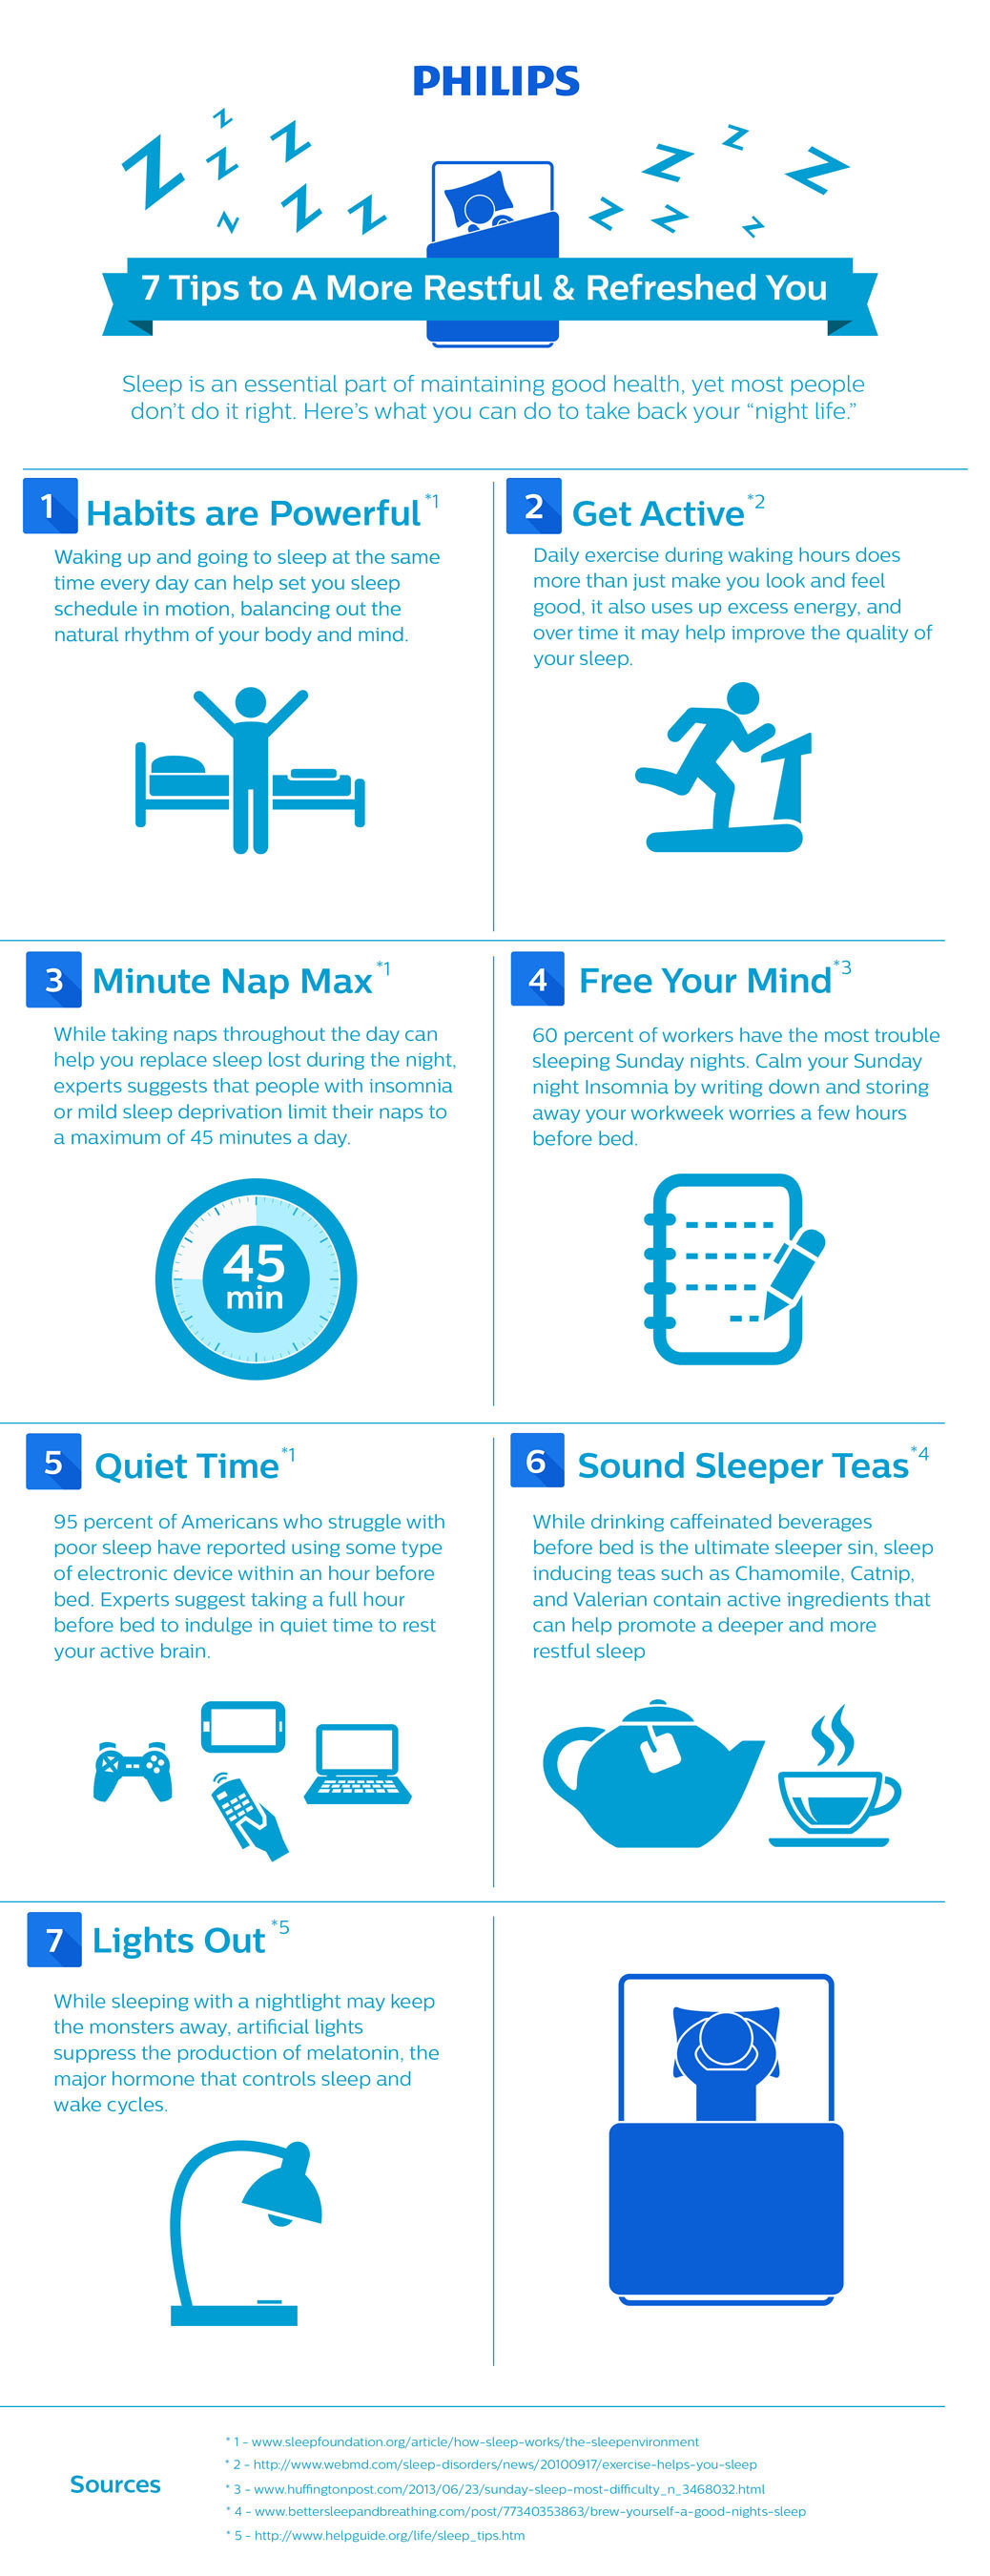 Philips celebrates World Sleep Day to raise awareness of the benefits of good sleep